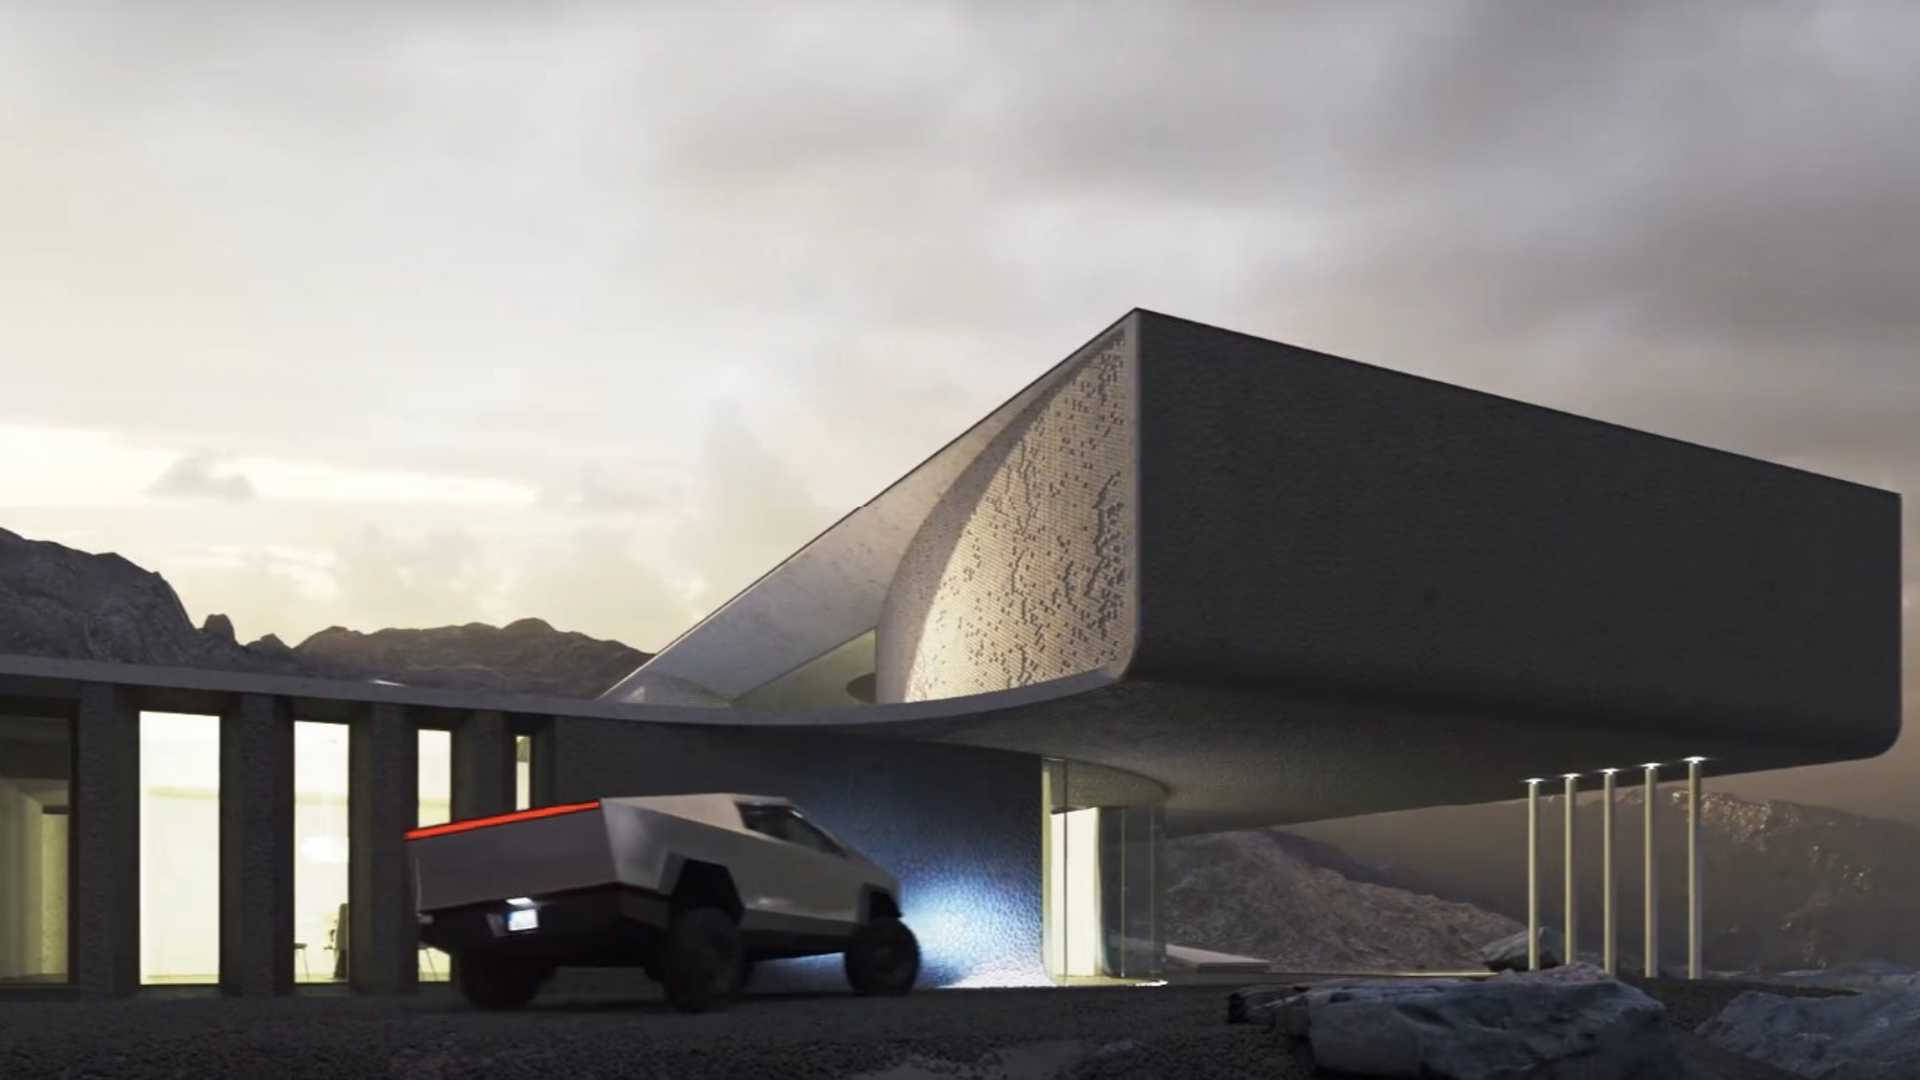 Is this radical house fitting for a Tesla Cybertruck?